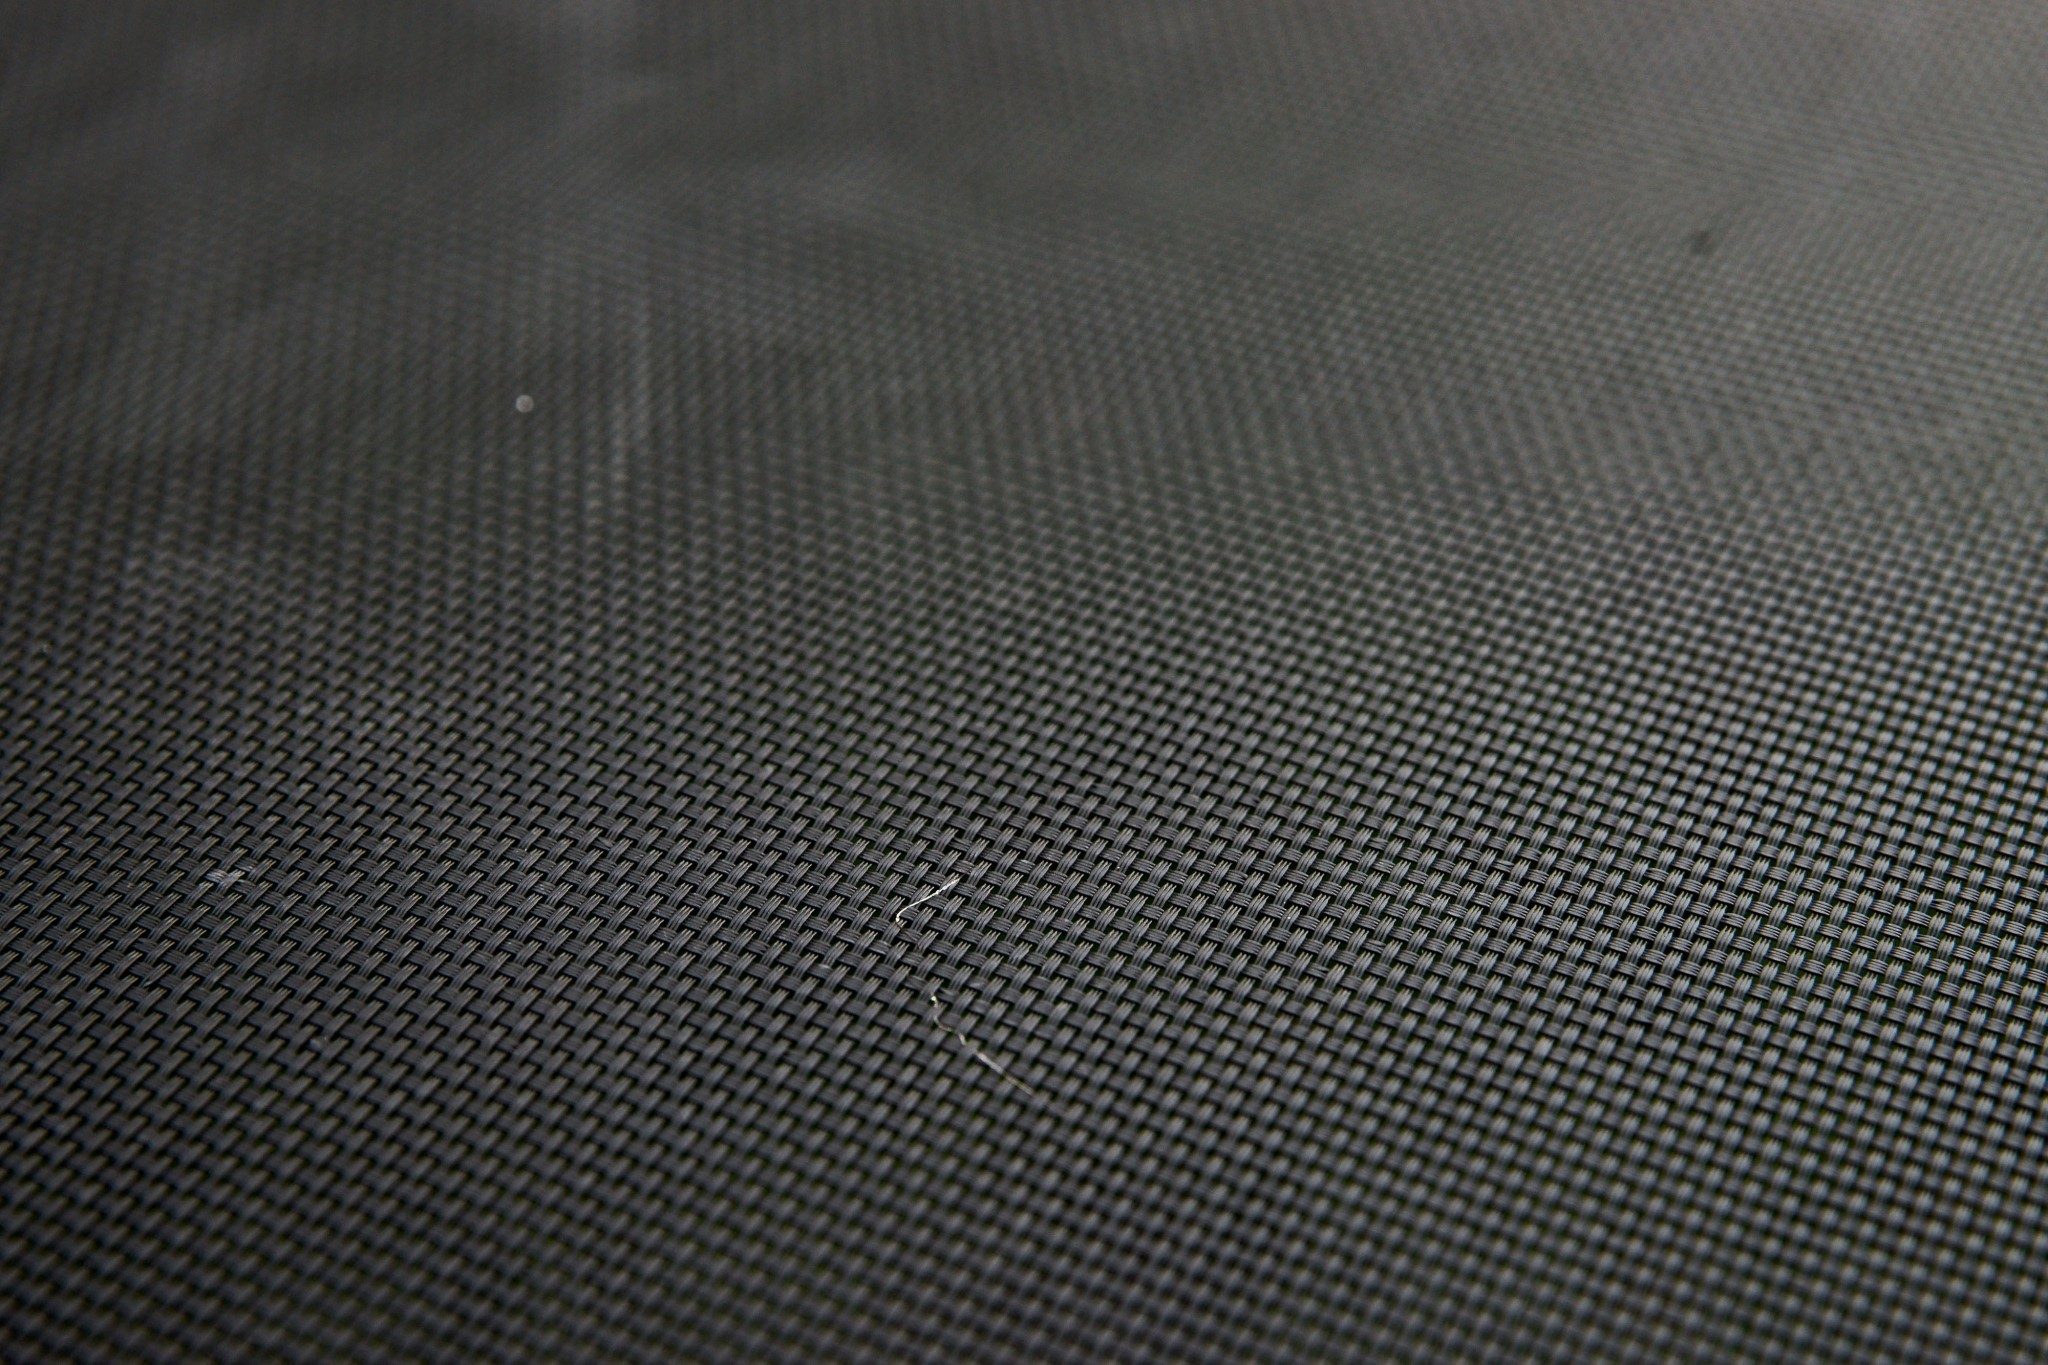 2048x1365 carbon fiber background wallpaper free